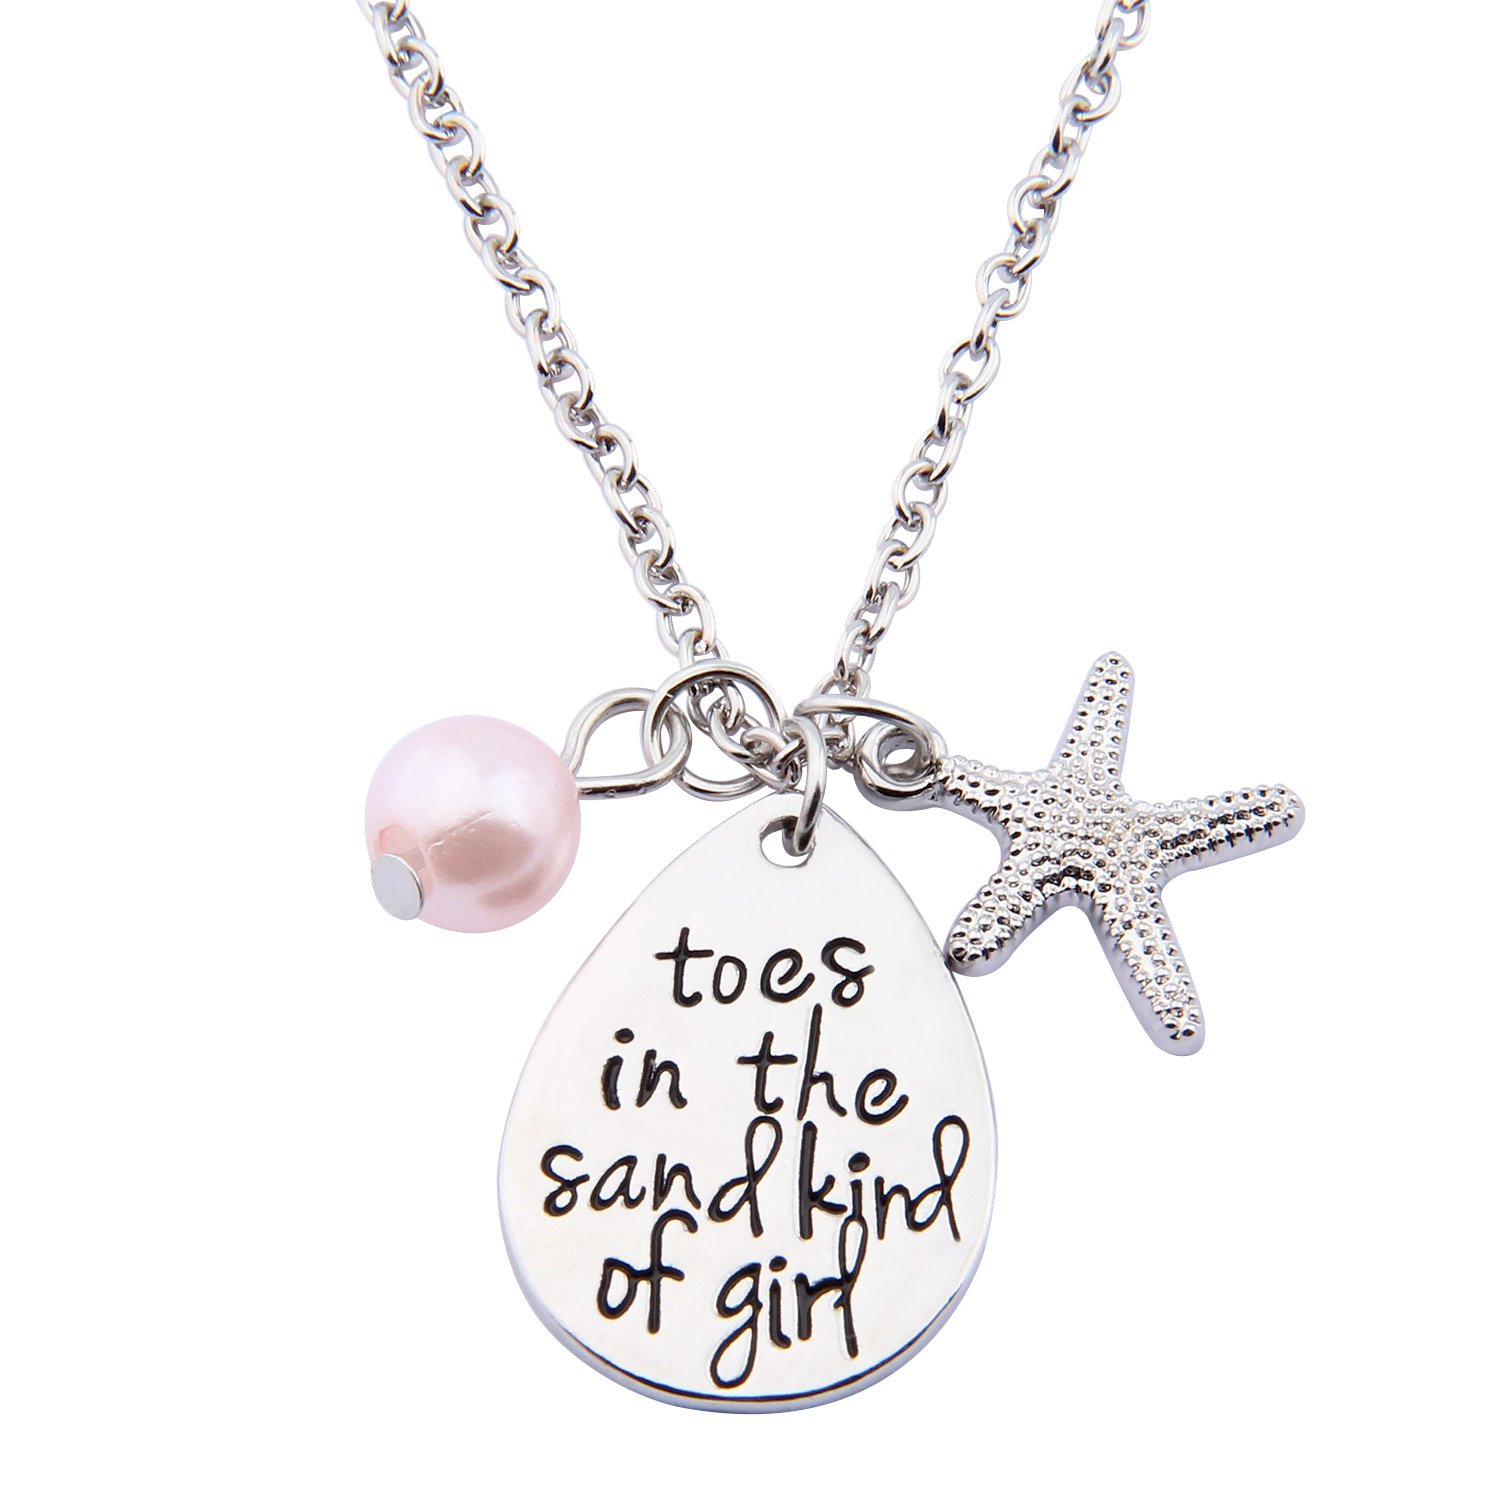 ENSIANTH Toes In The Sand Kind of Girl Engraved Charms Necklace Beach Jewelry with Starfish (waterdrop necklace) by ENSIANTH (Image #1)